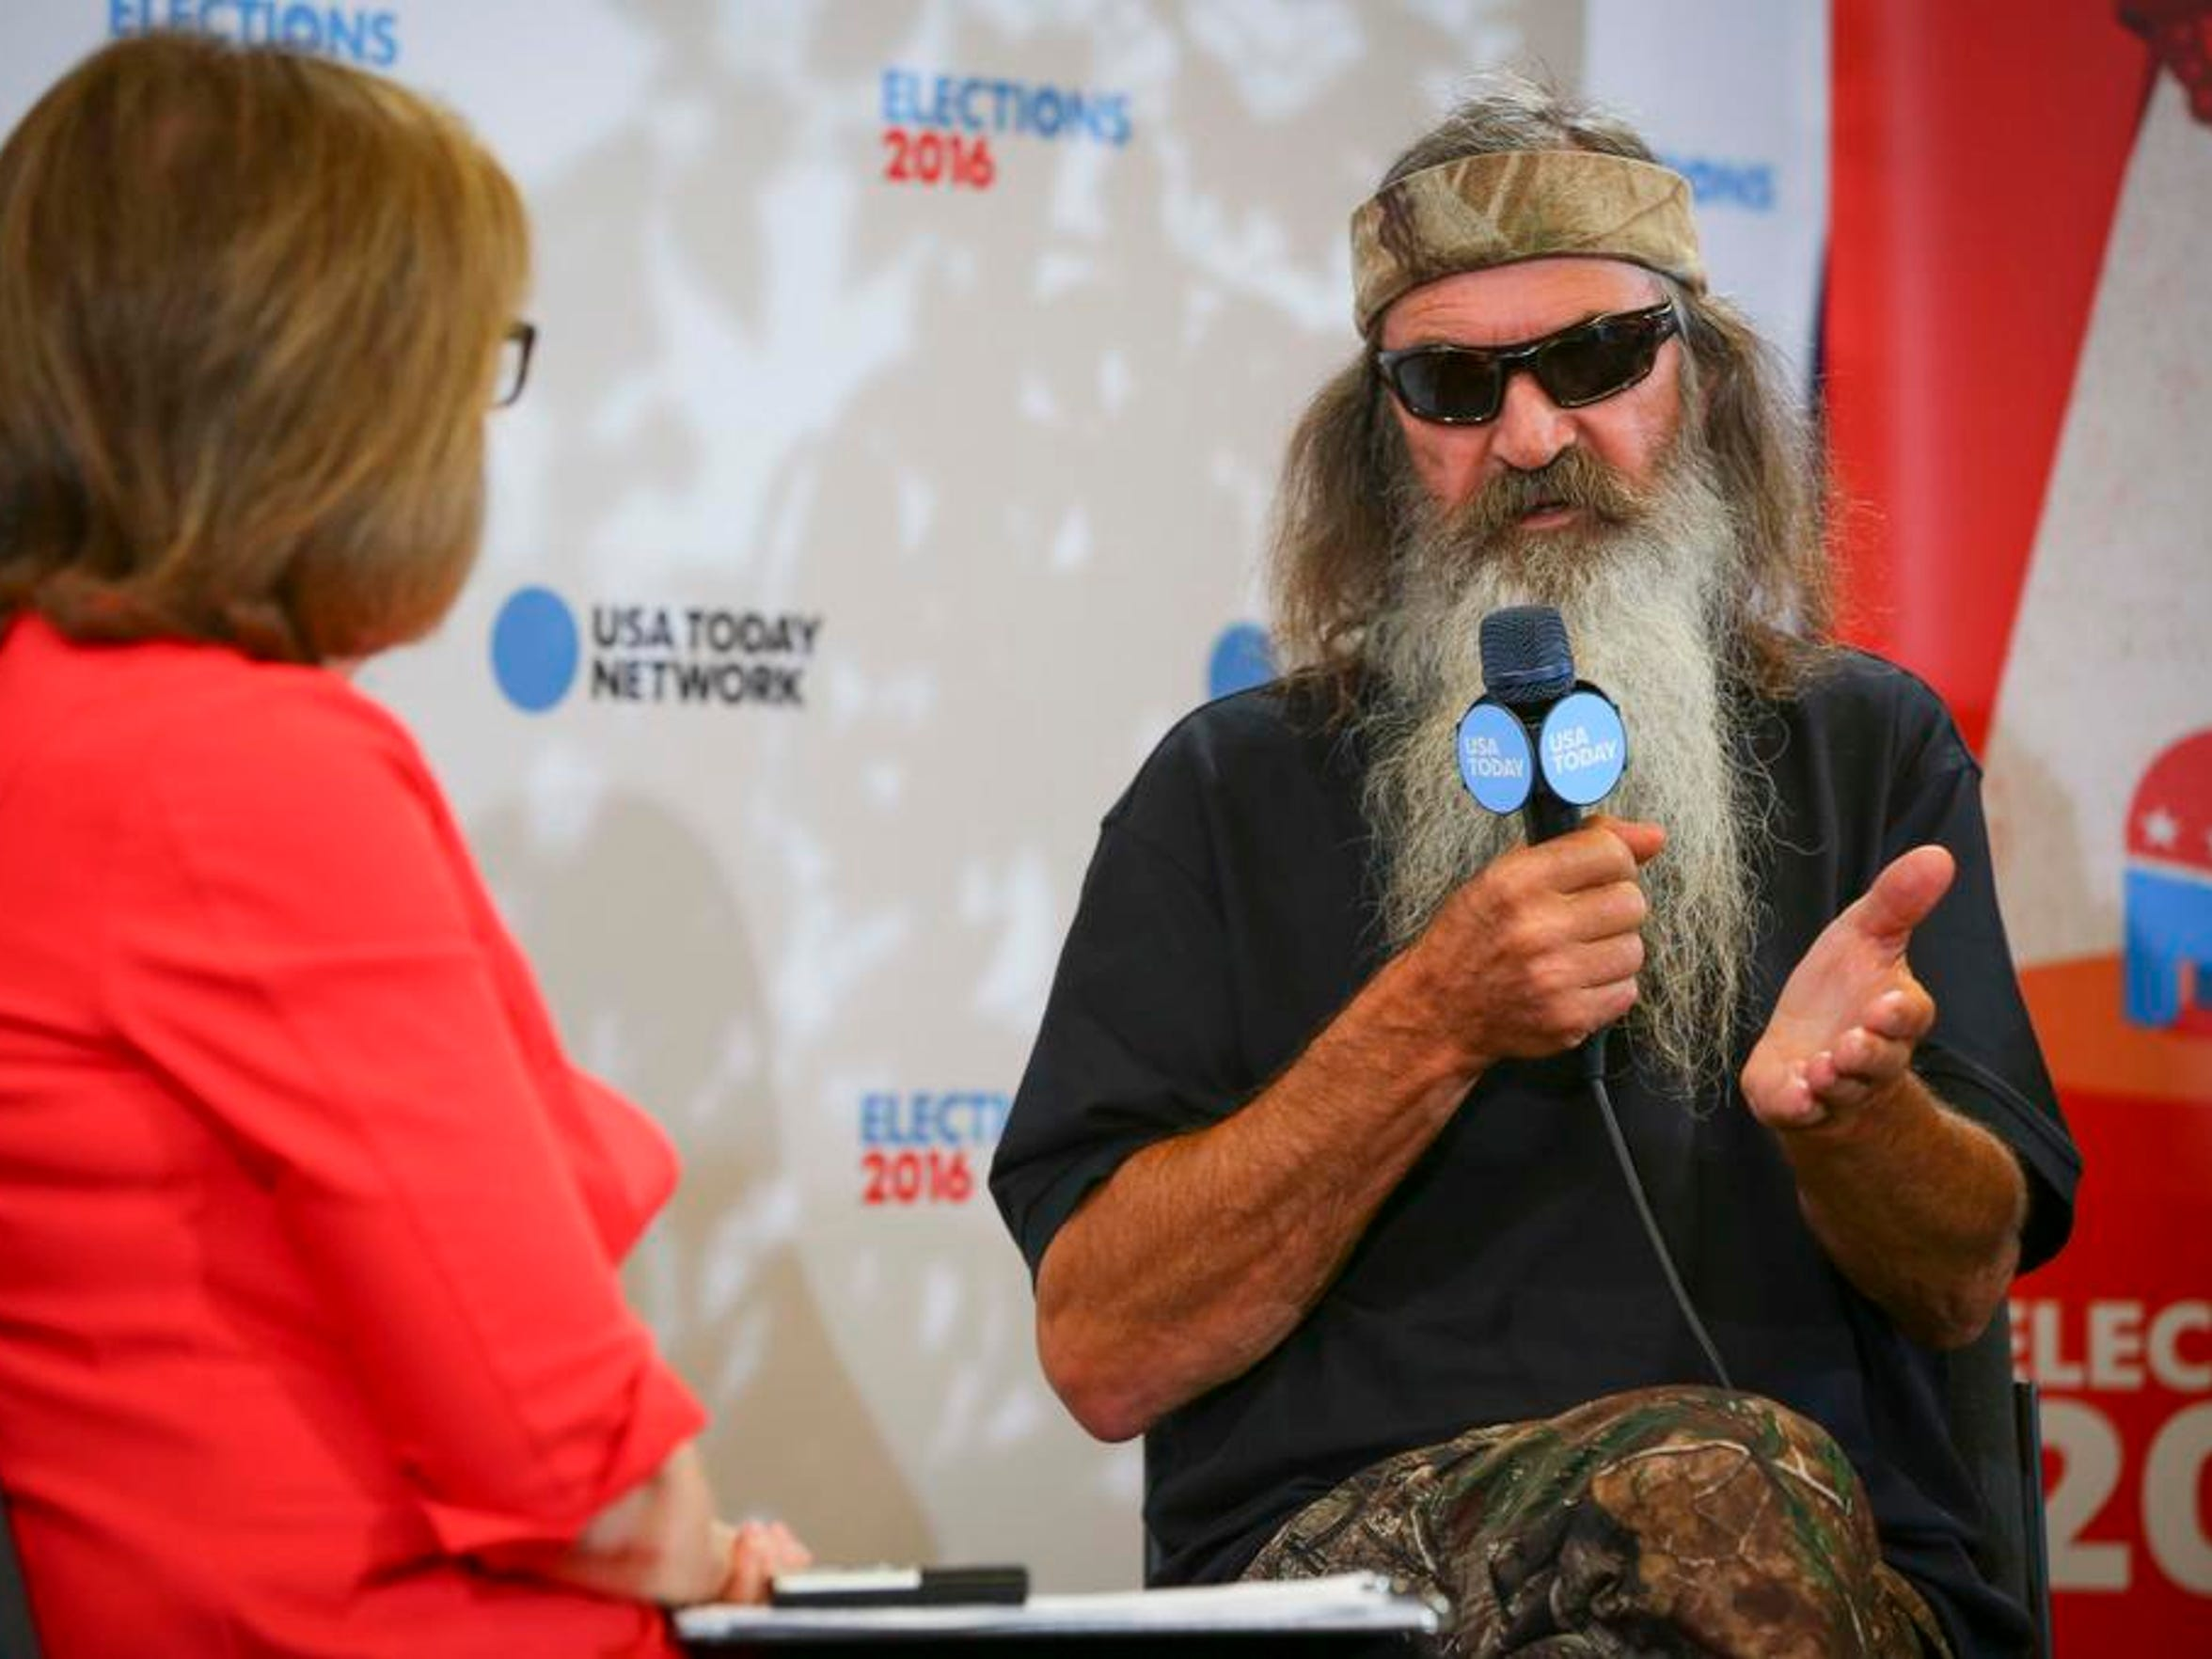 Susan Page interviews Phil Robertson of Duck Dynasty